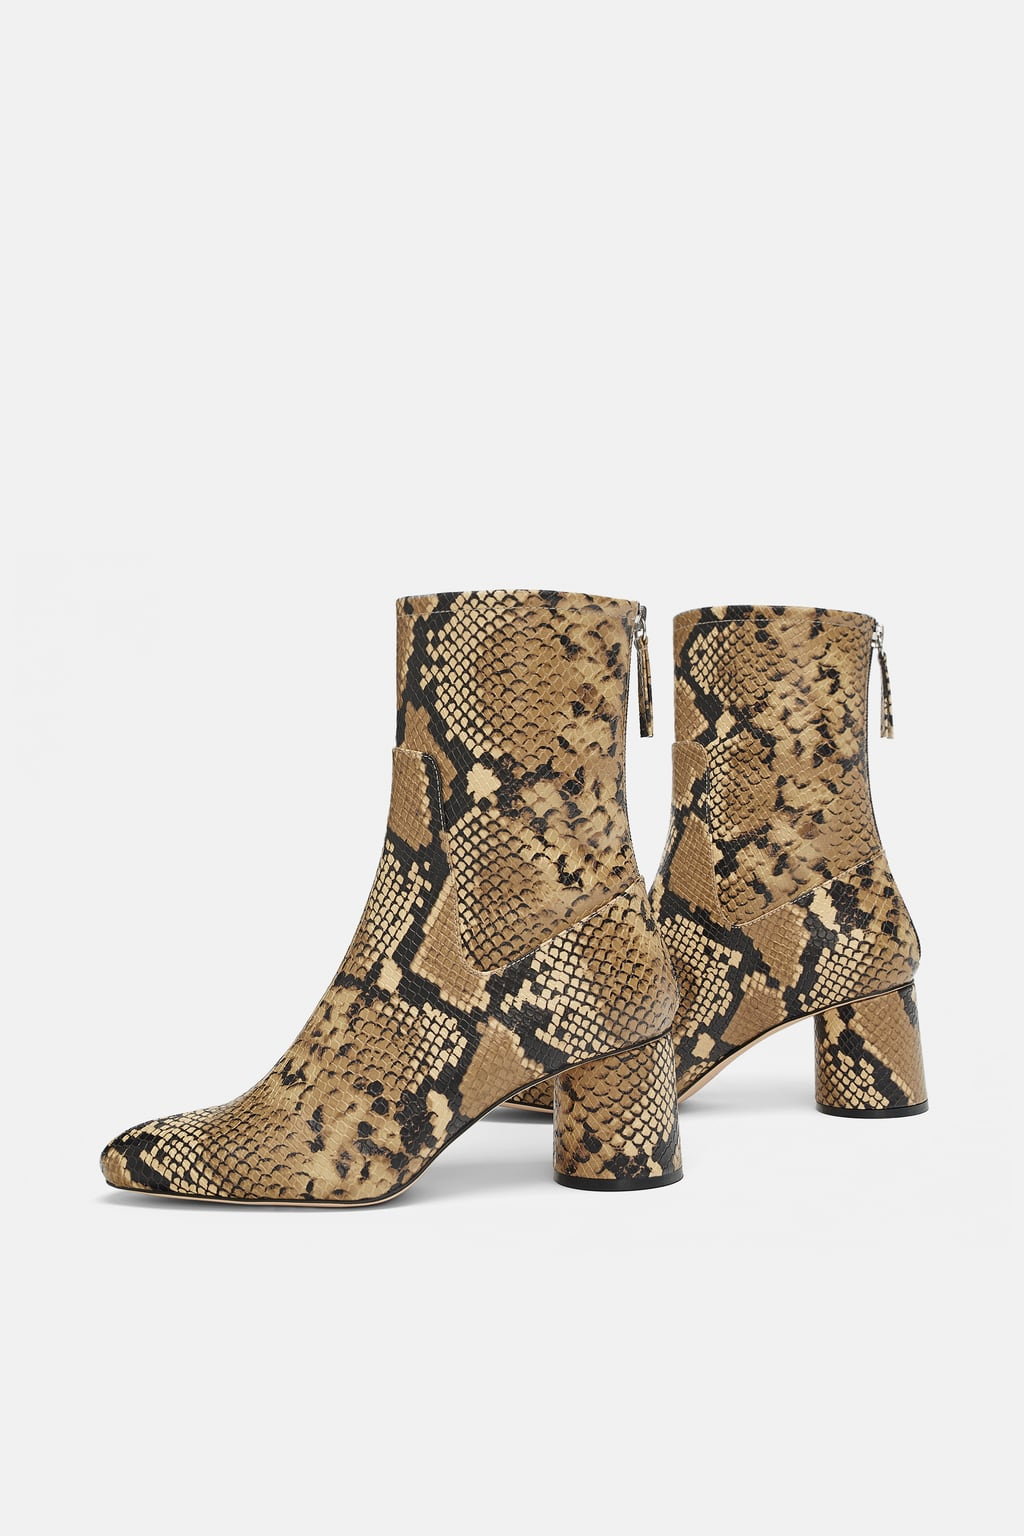 Ankle Boots - £29.99